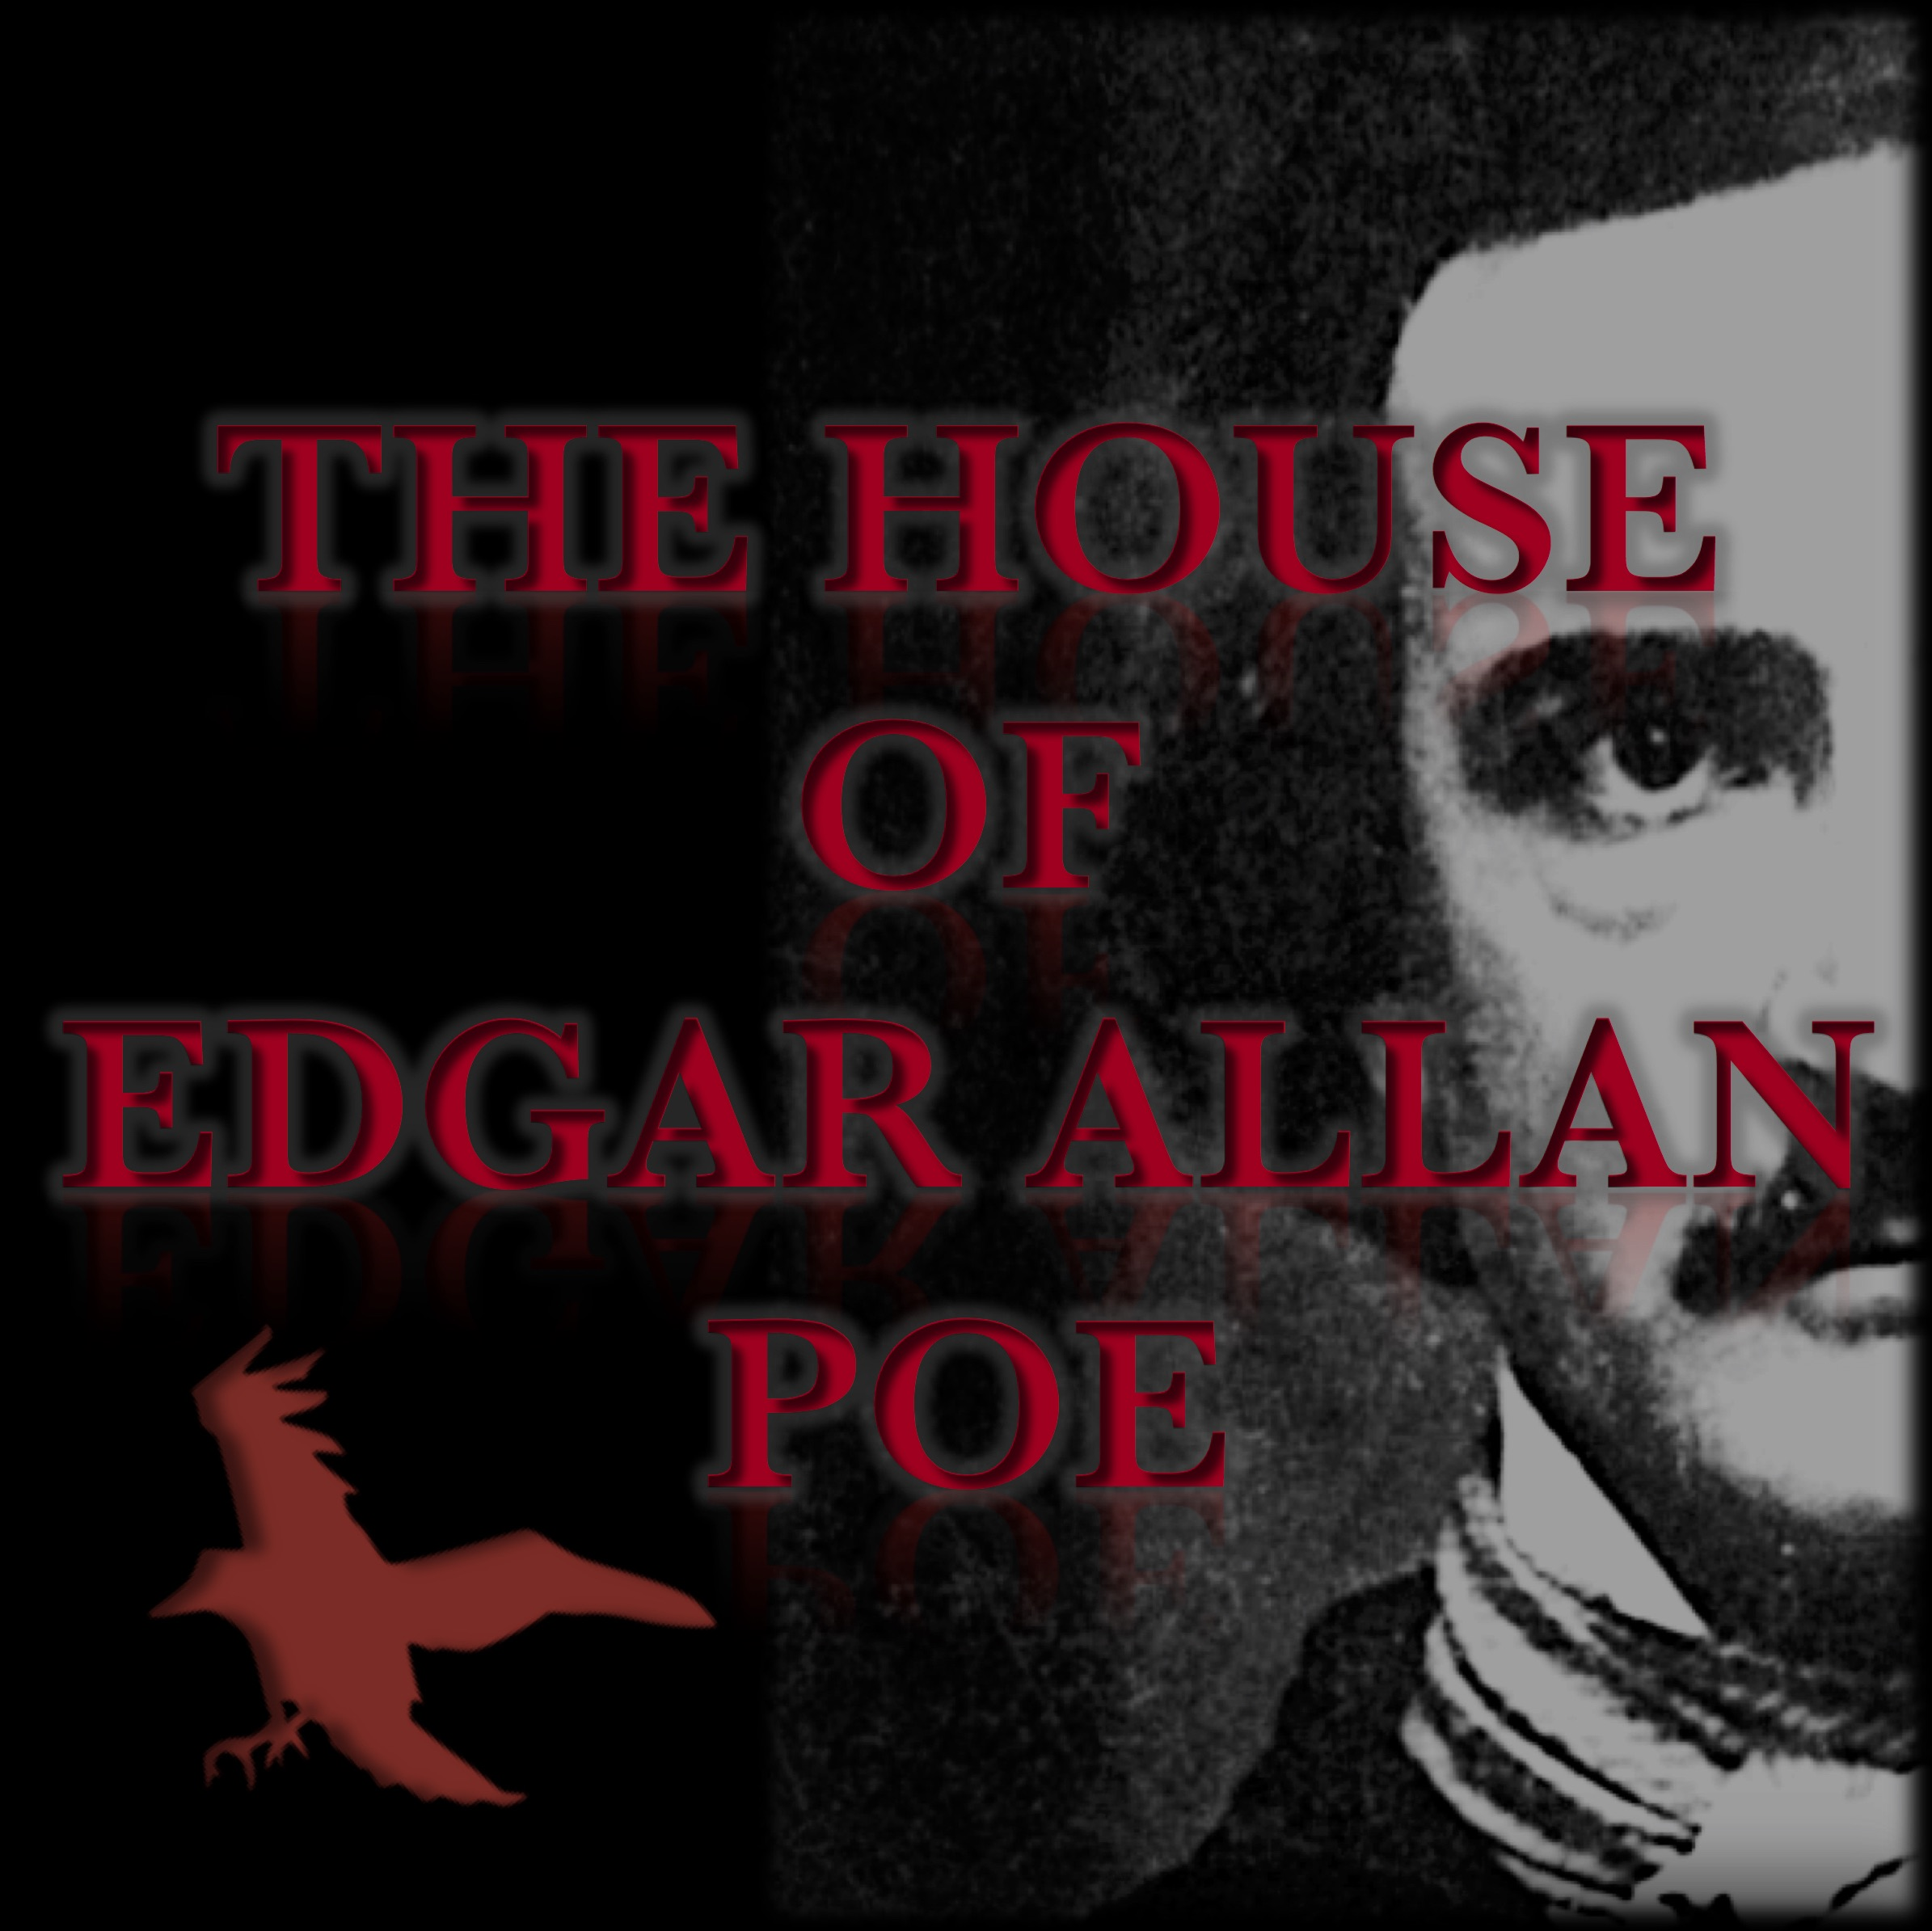 The House of Edgar Allan Poe